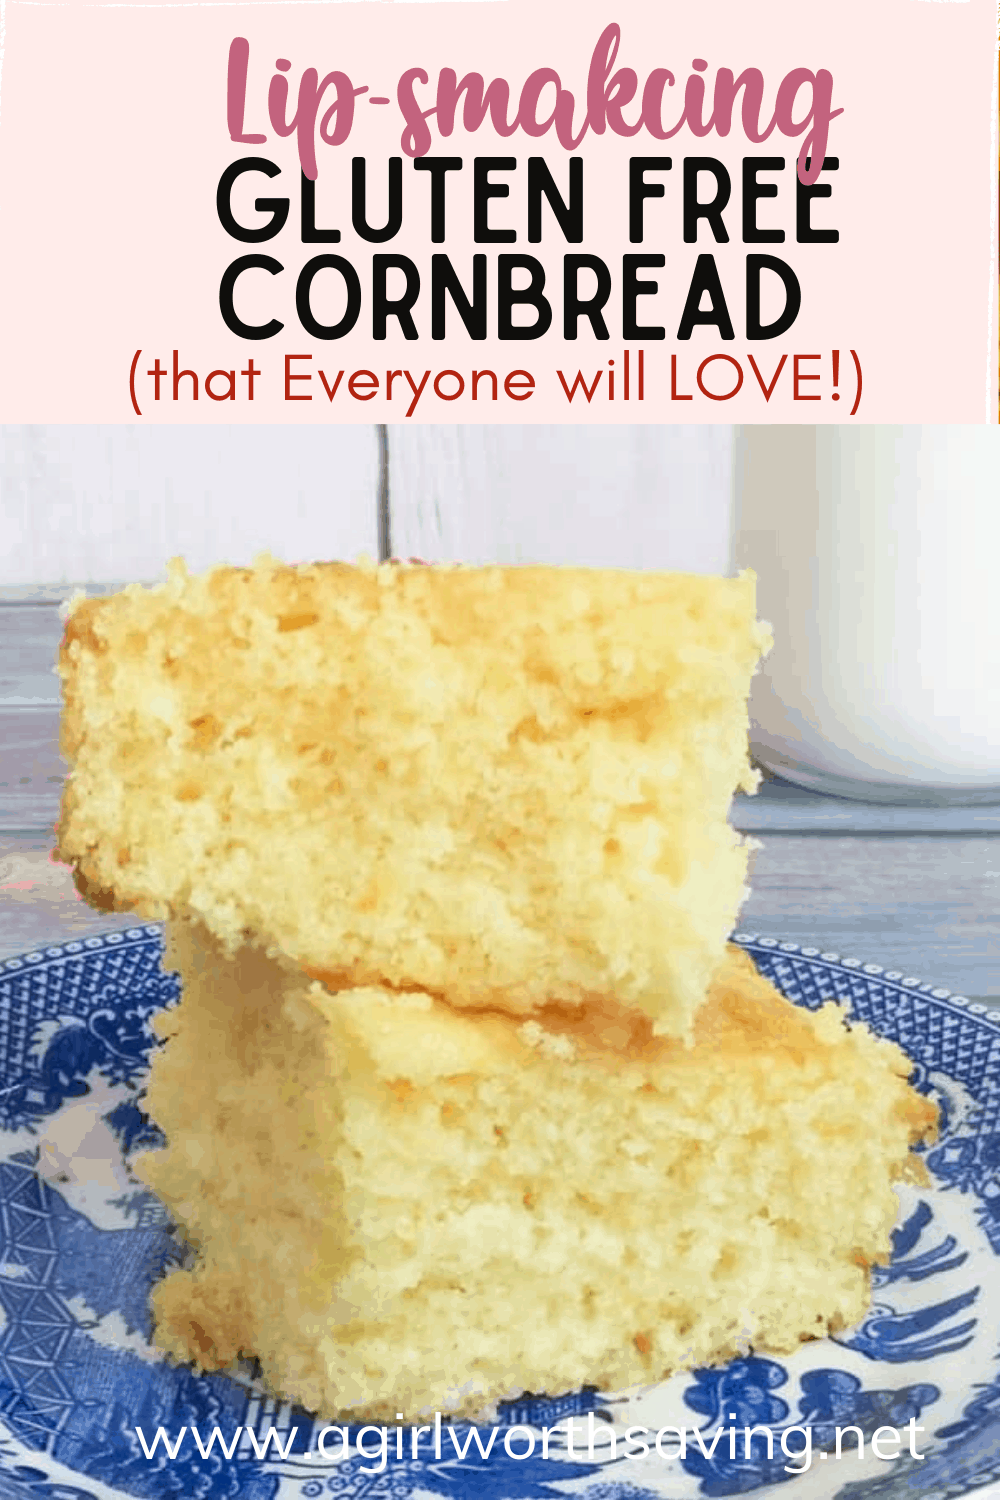 Is cornbread gluten-free? This gluten-free cornbread is moist, delicious, and sure to be a hit. Perfect with a bowl of chili or just slathered with honey butter.